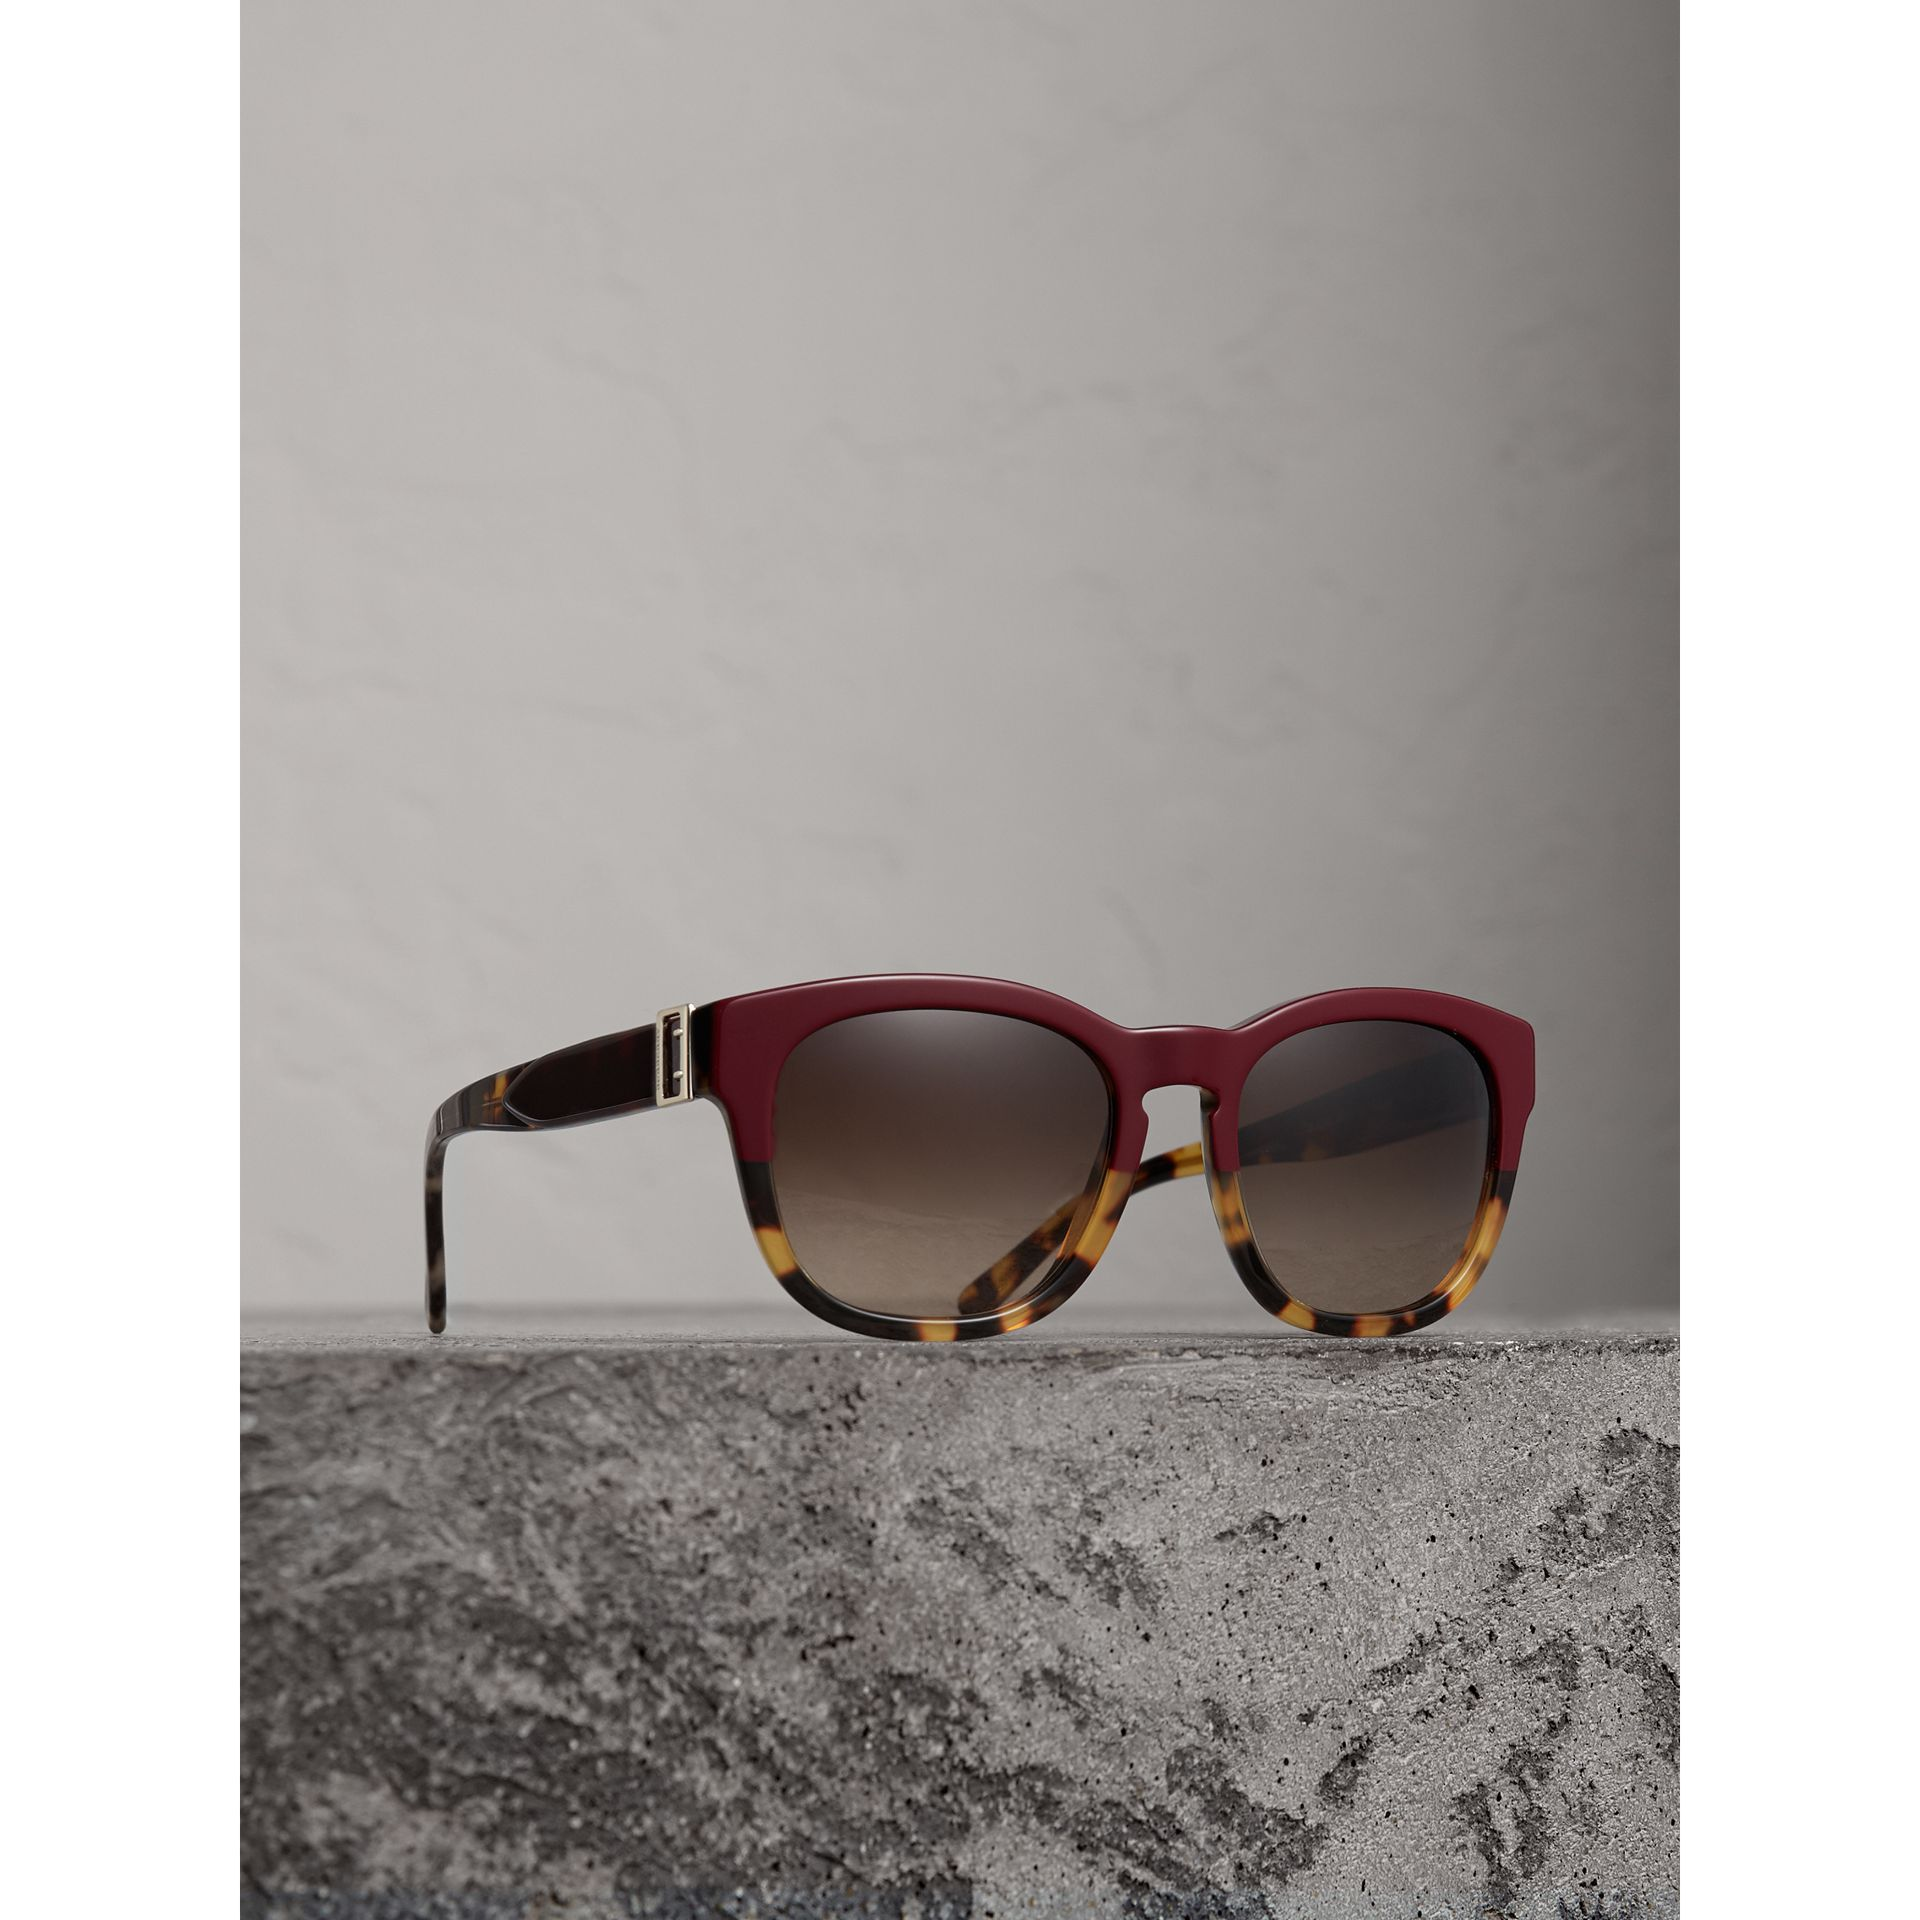 Buckle Detail Square Frame Sunglasses in Burgundy - Women | Burberry Australia - gallery image 1